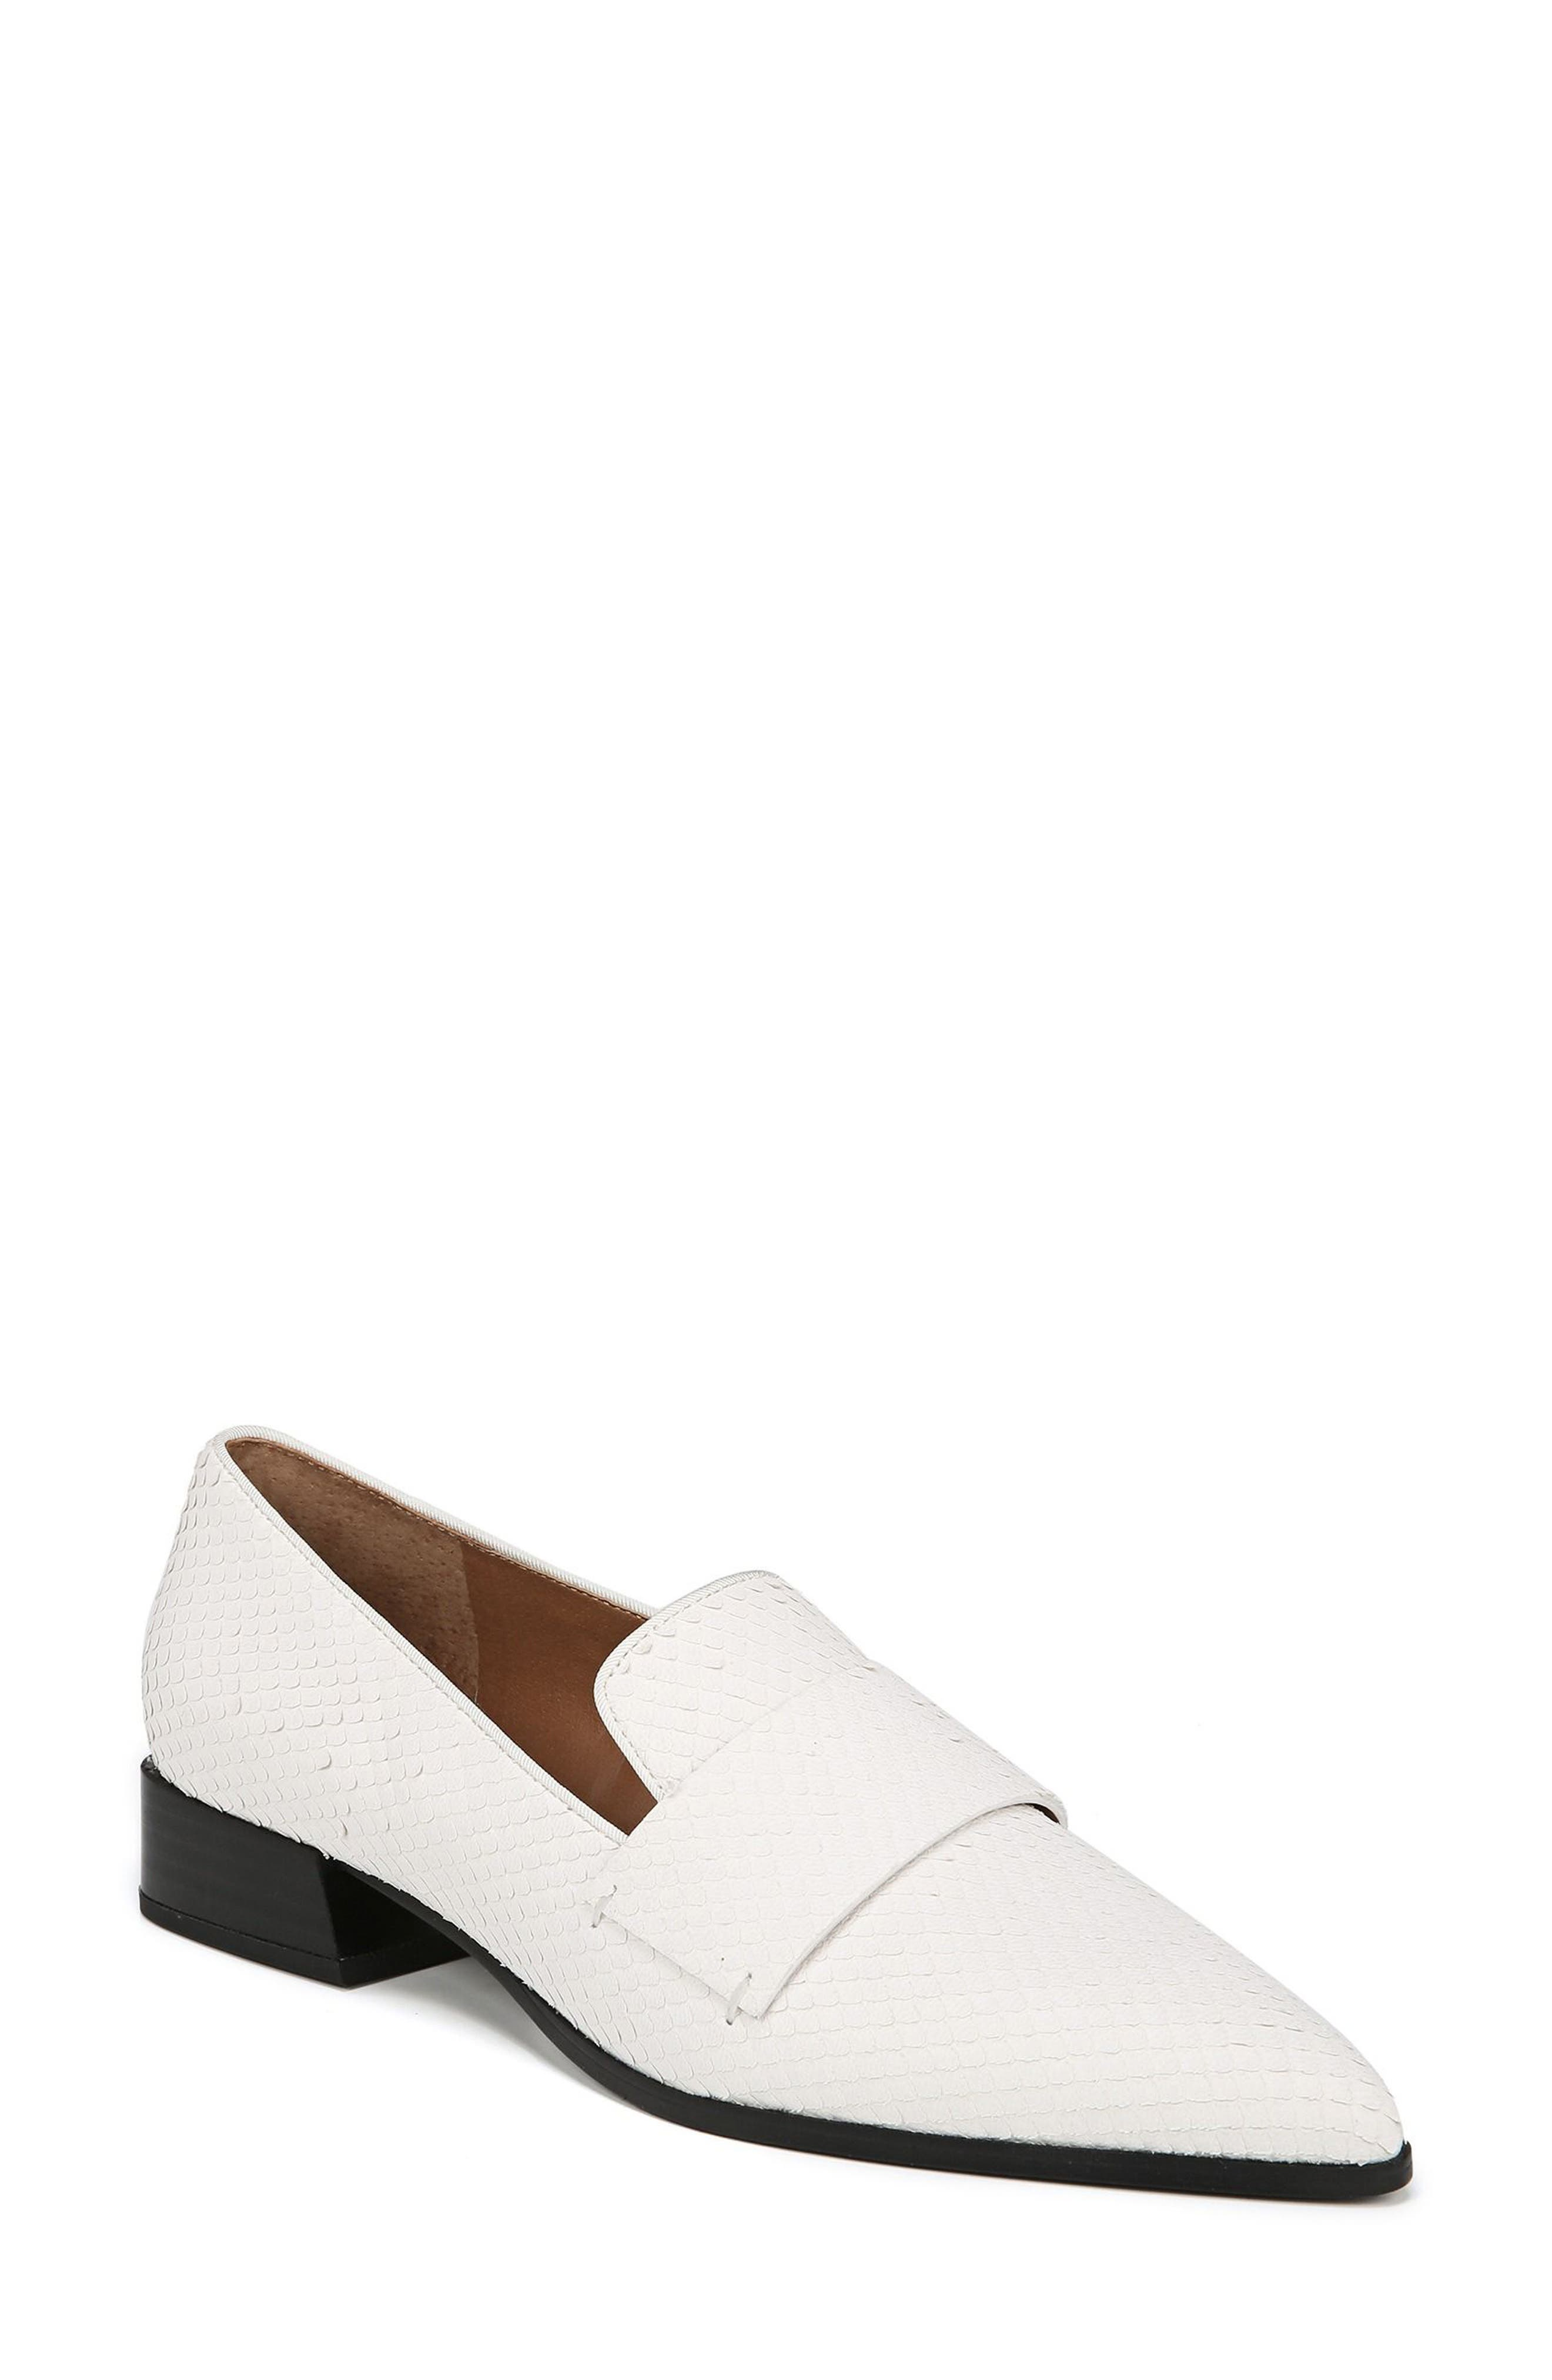 Nebby 2 Pointy Toe Loafer,                         Main,                         color, WHITE LEATHER